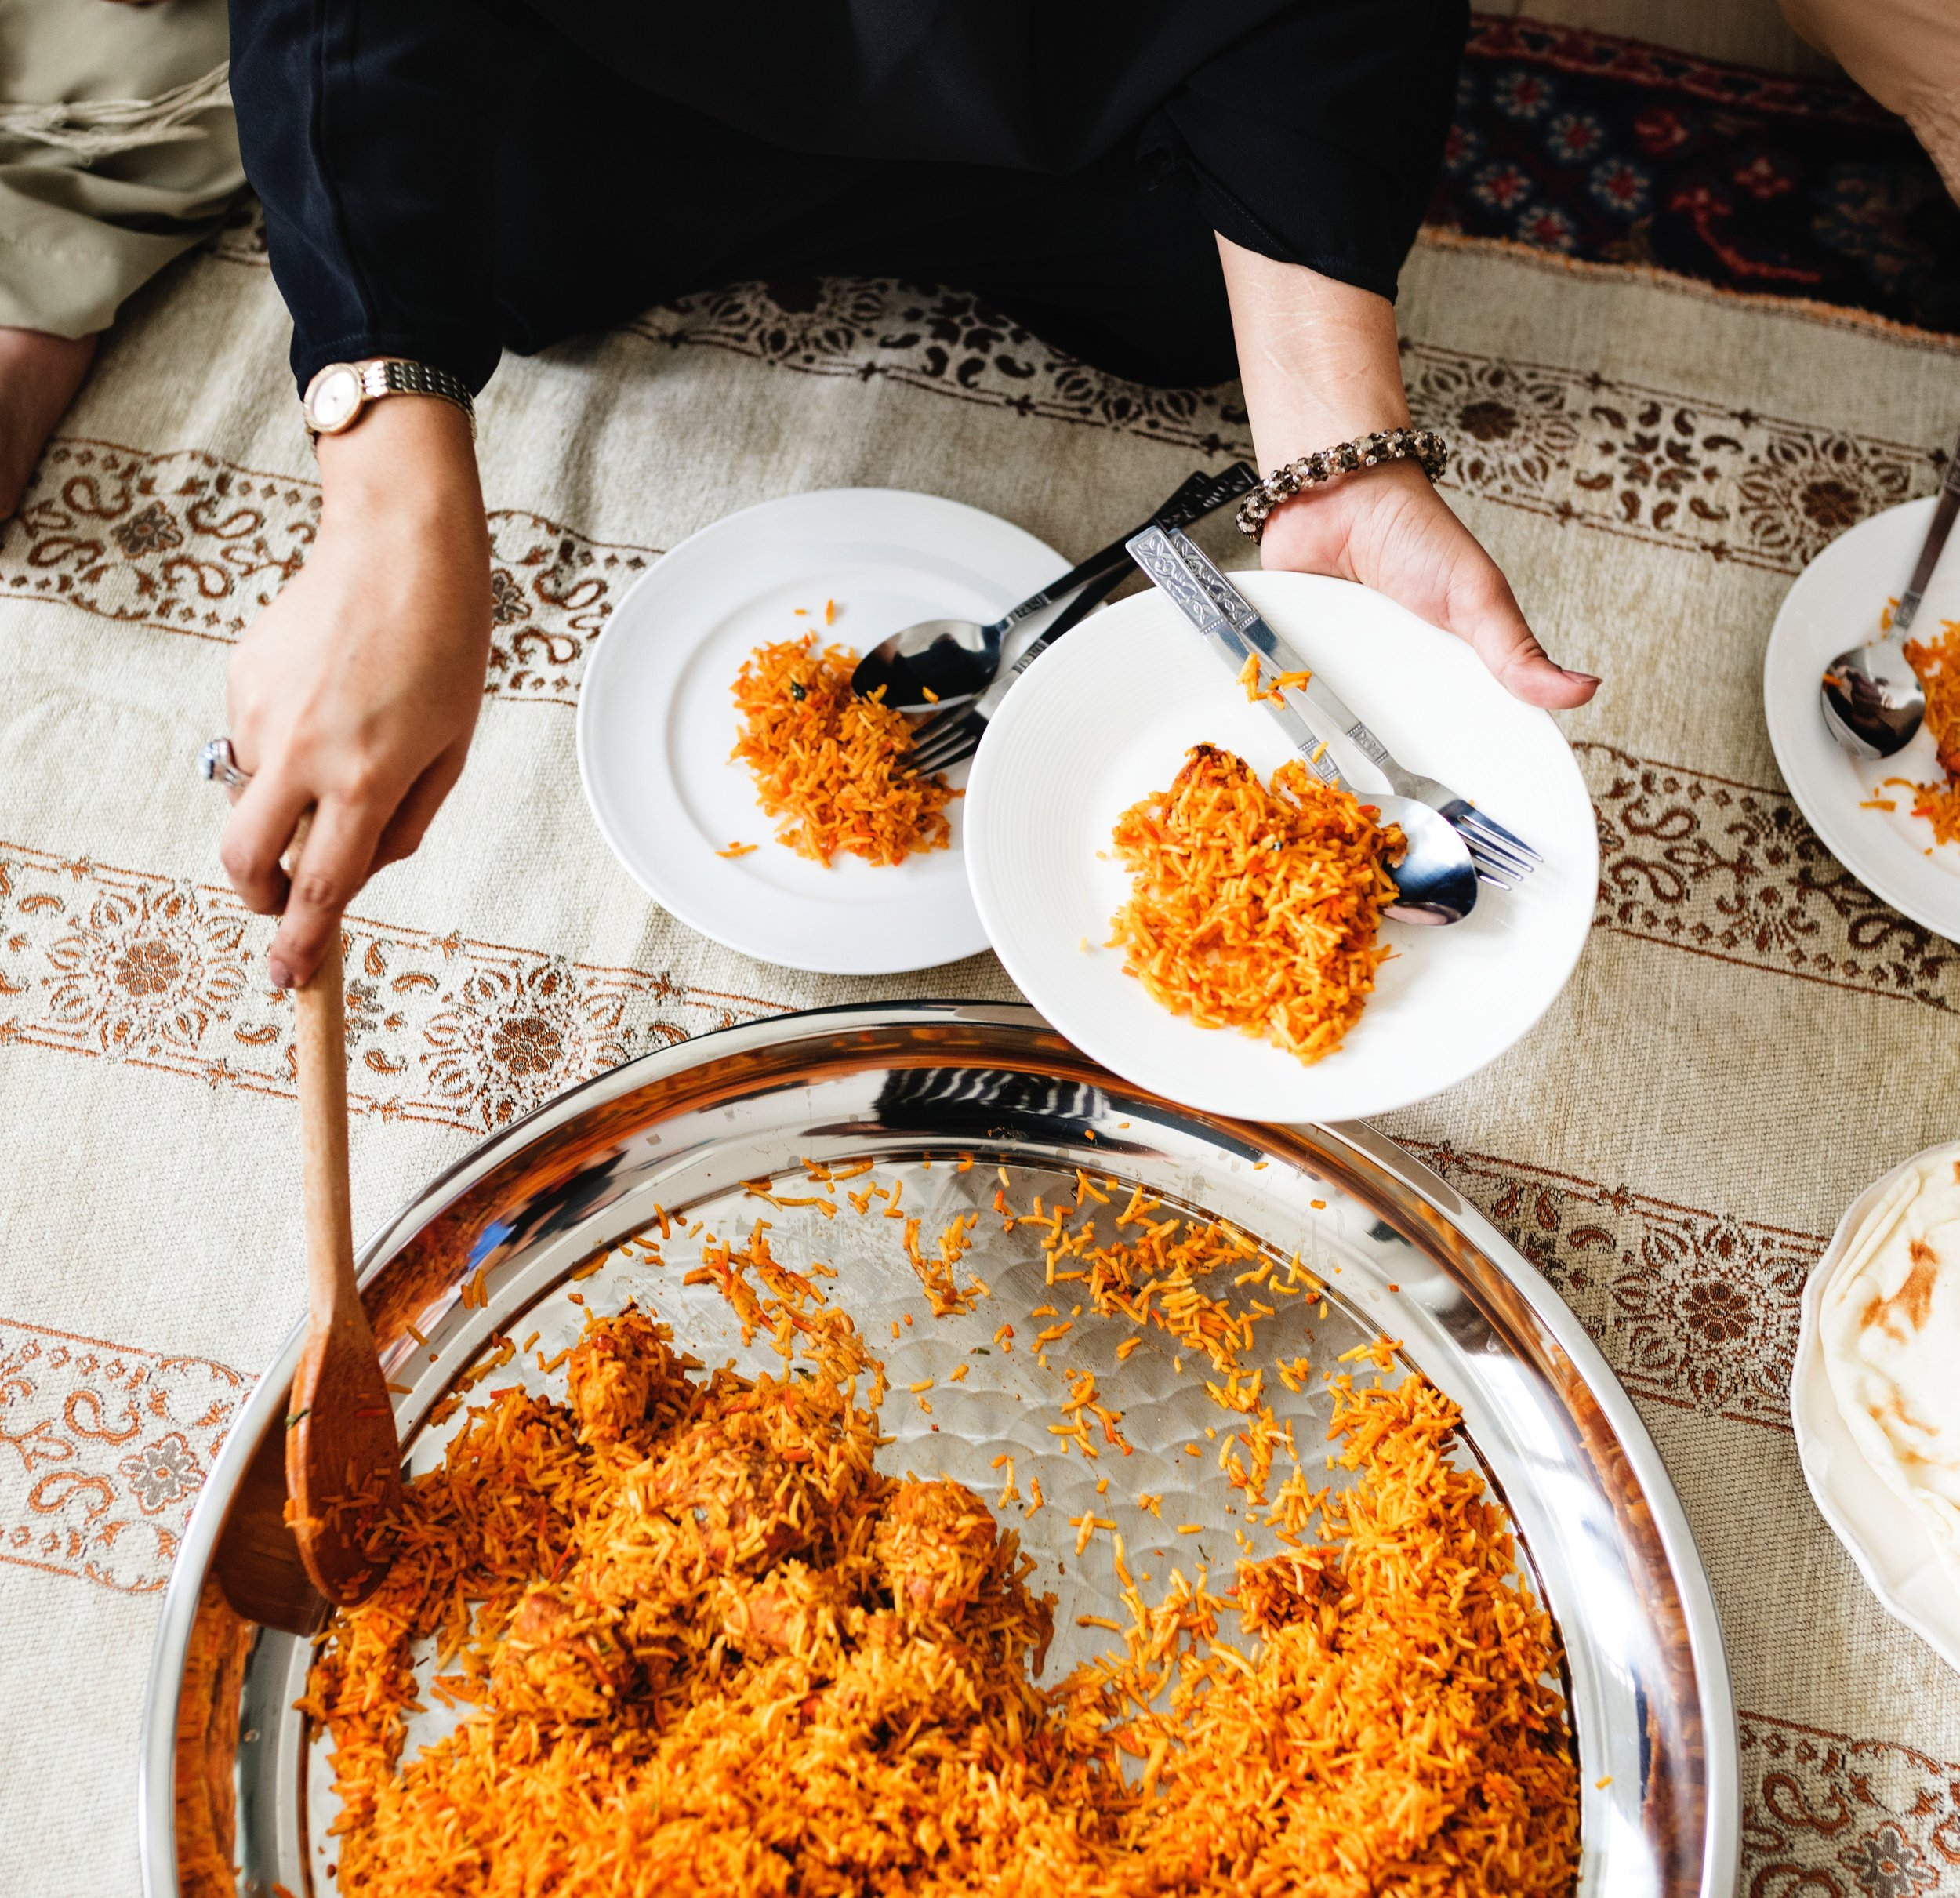 arabic-carpet-cuisine-1253532.jpg